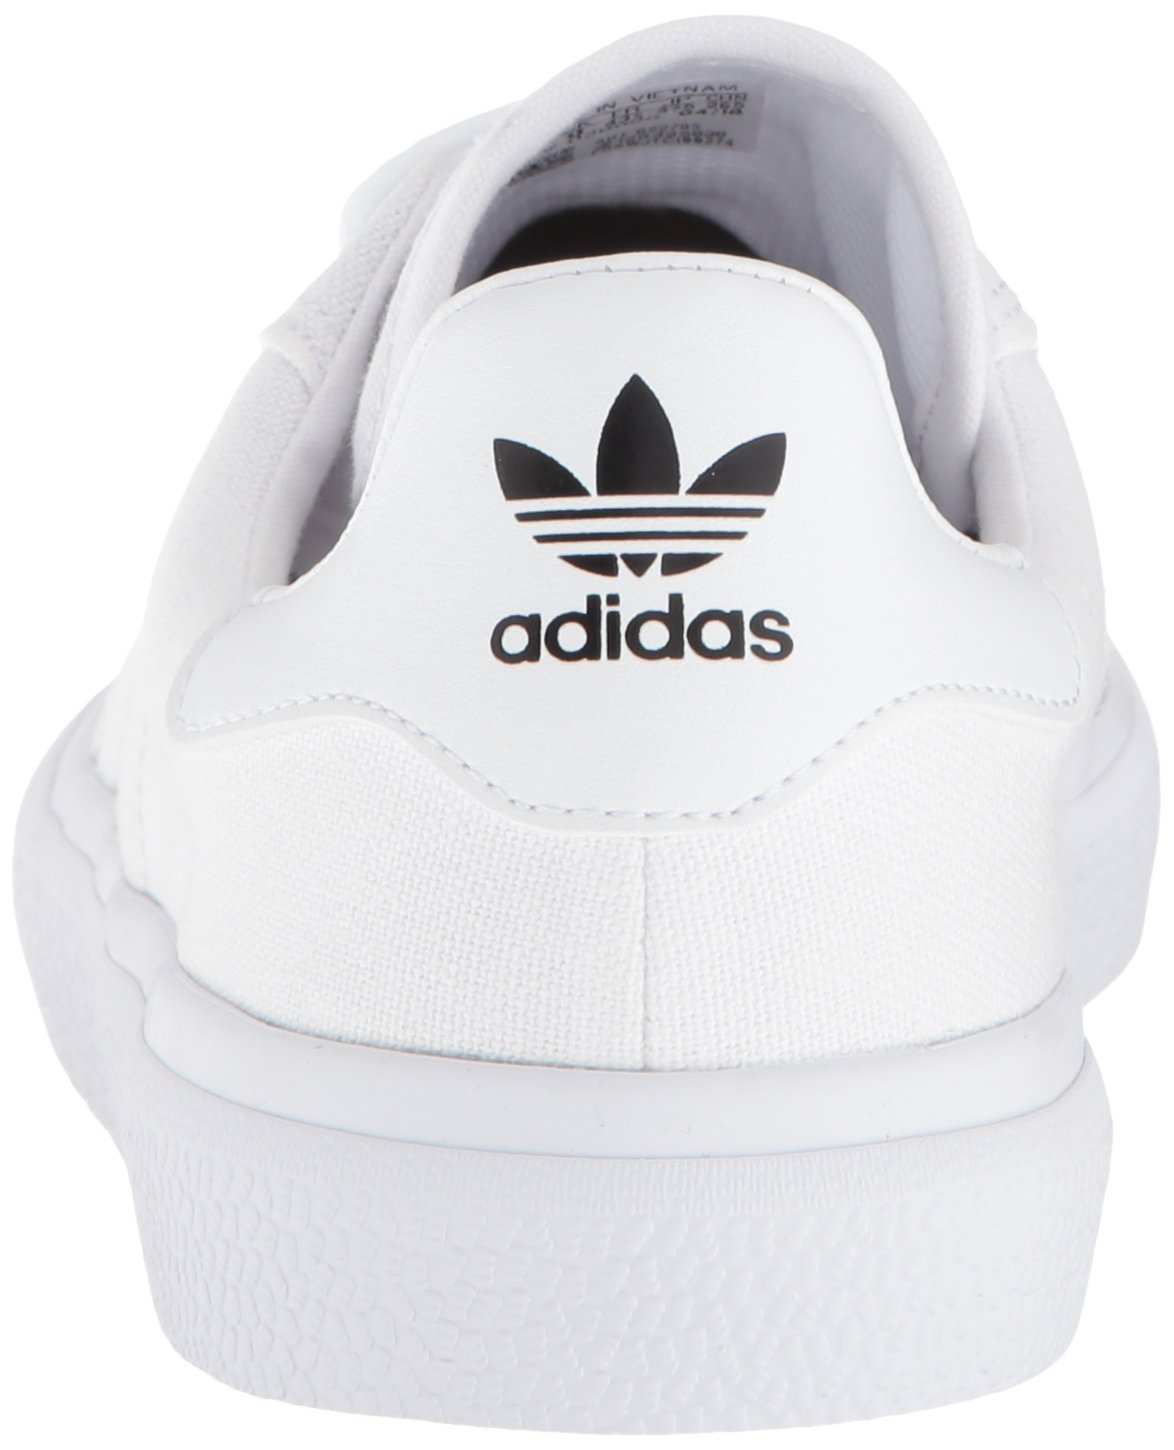 adidas Originals Unisex-adult 3 MC Skate Shoe White/Gold Metallic, 5.5 M US by adidas Originals (Image #2)